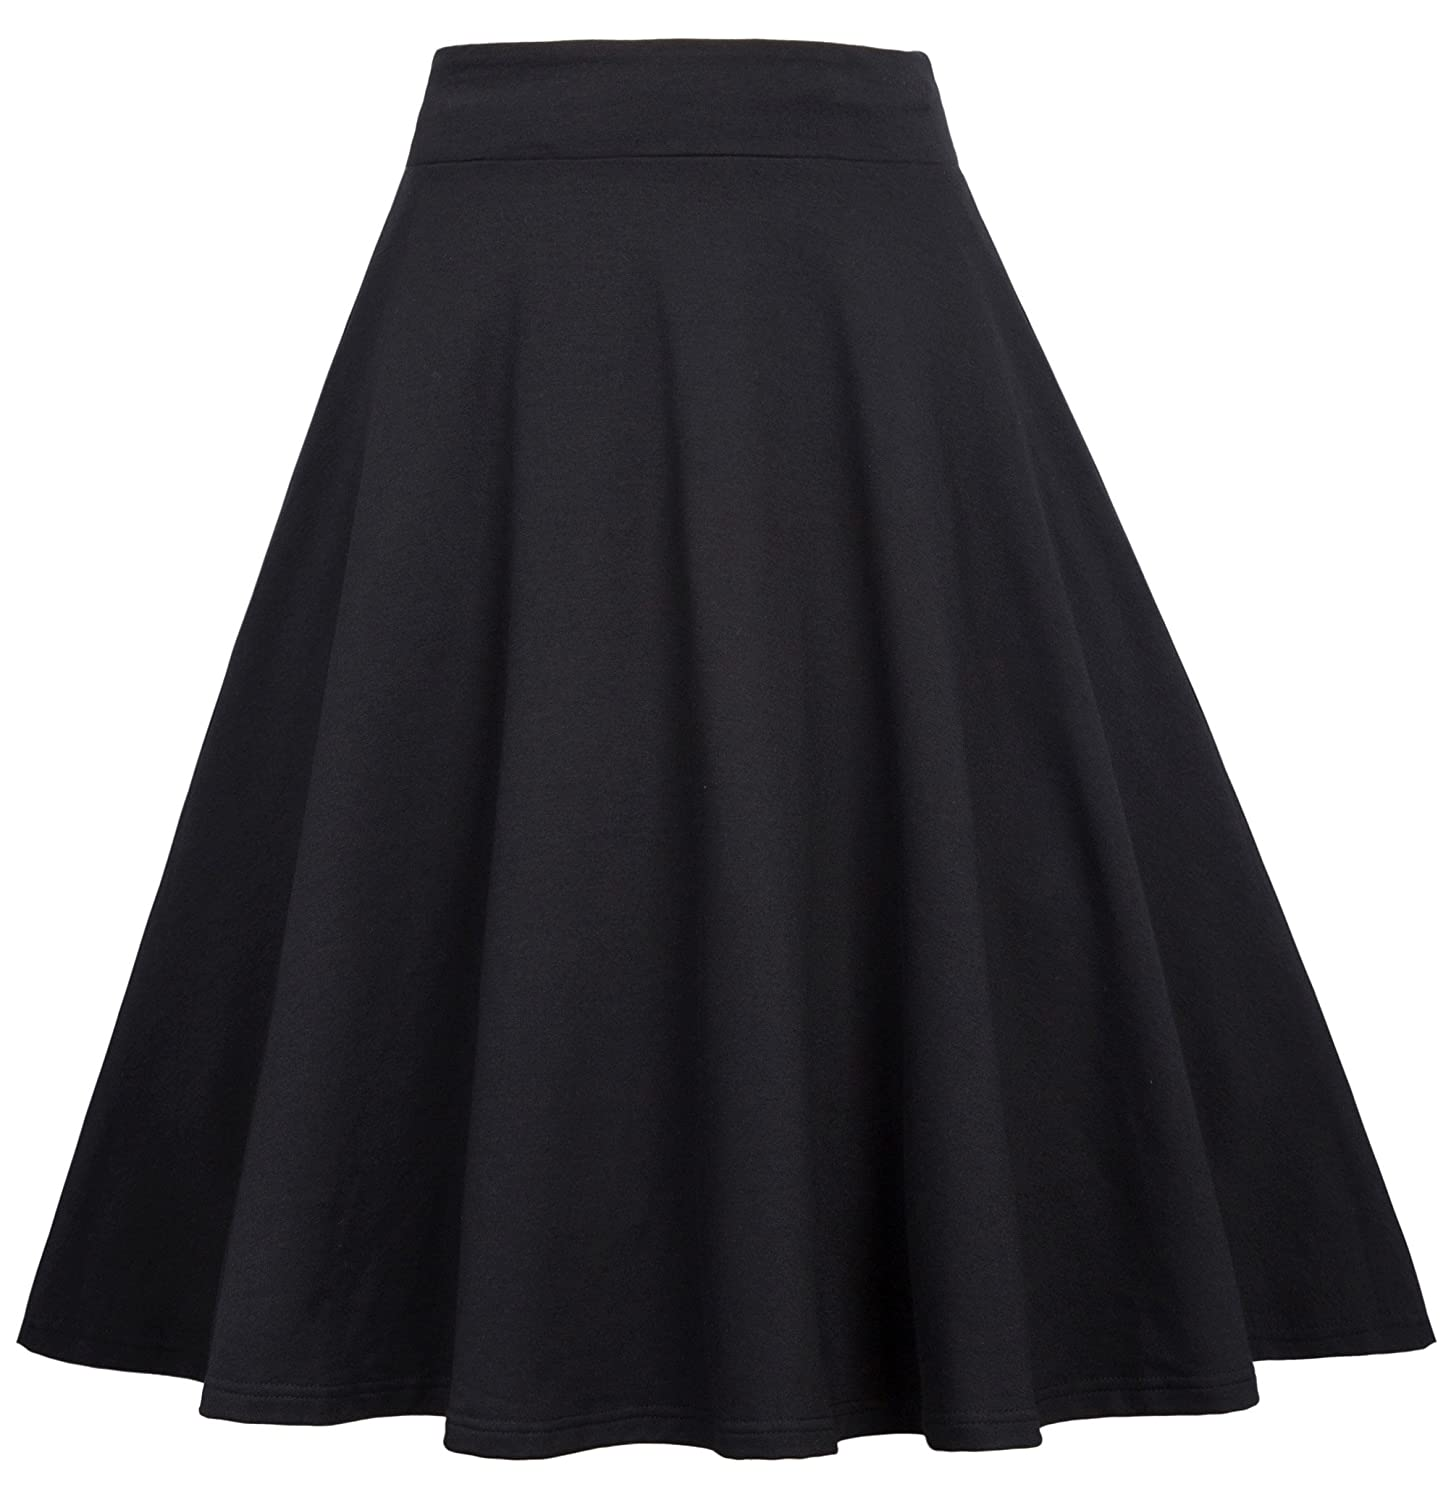 8efe98c98c Features: Flare Midi Skirt, Solid Color and Floral Printed, A-line, Elastic  Waist, Midi Length, Pull-on Closure